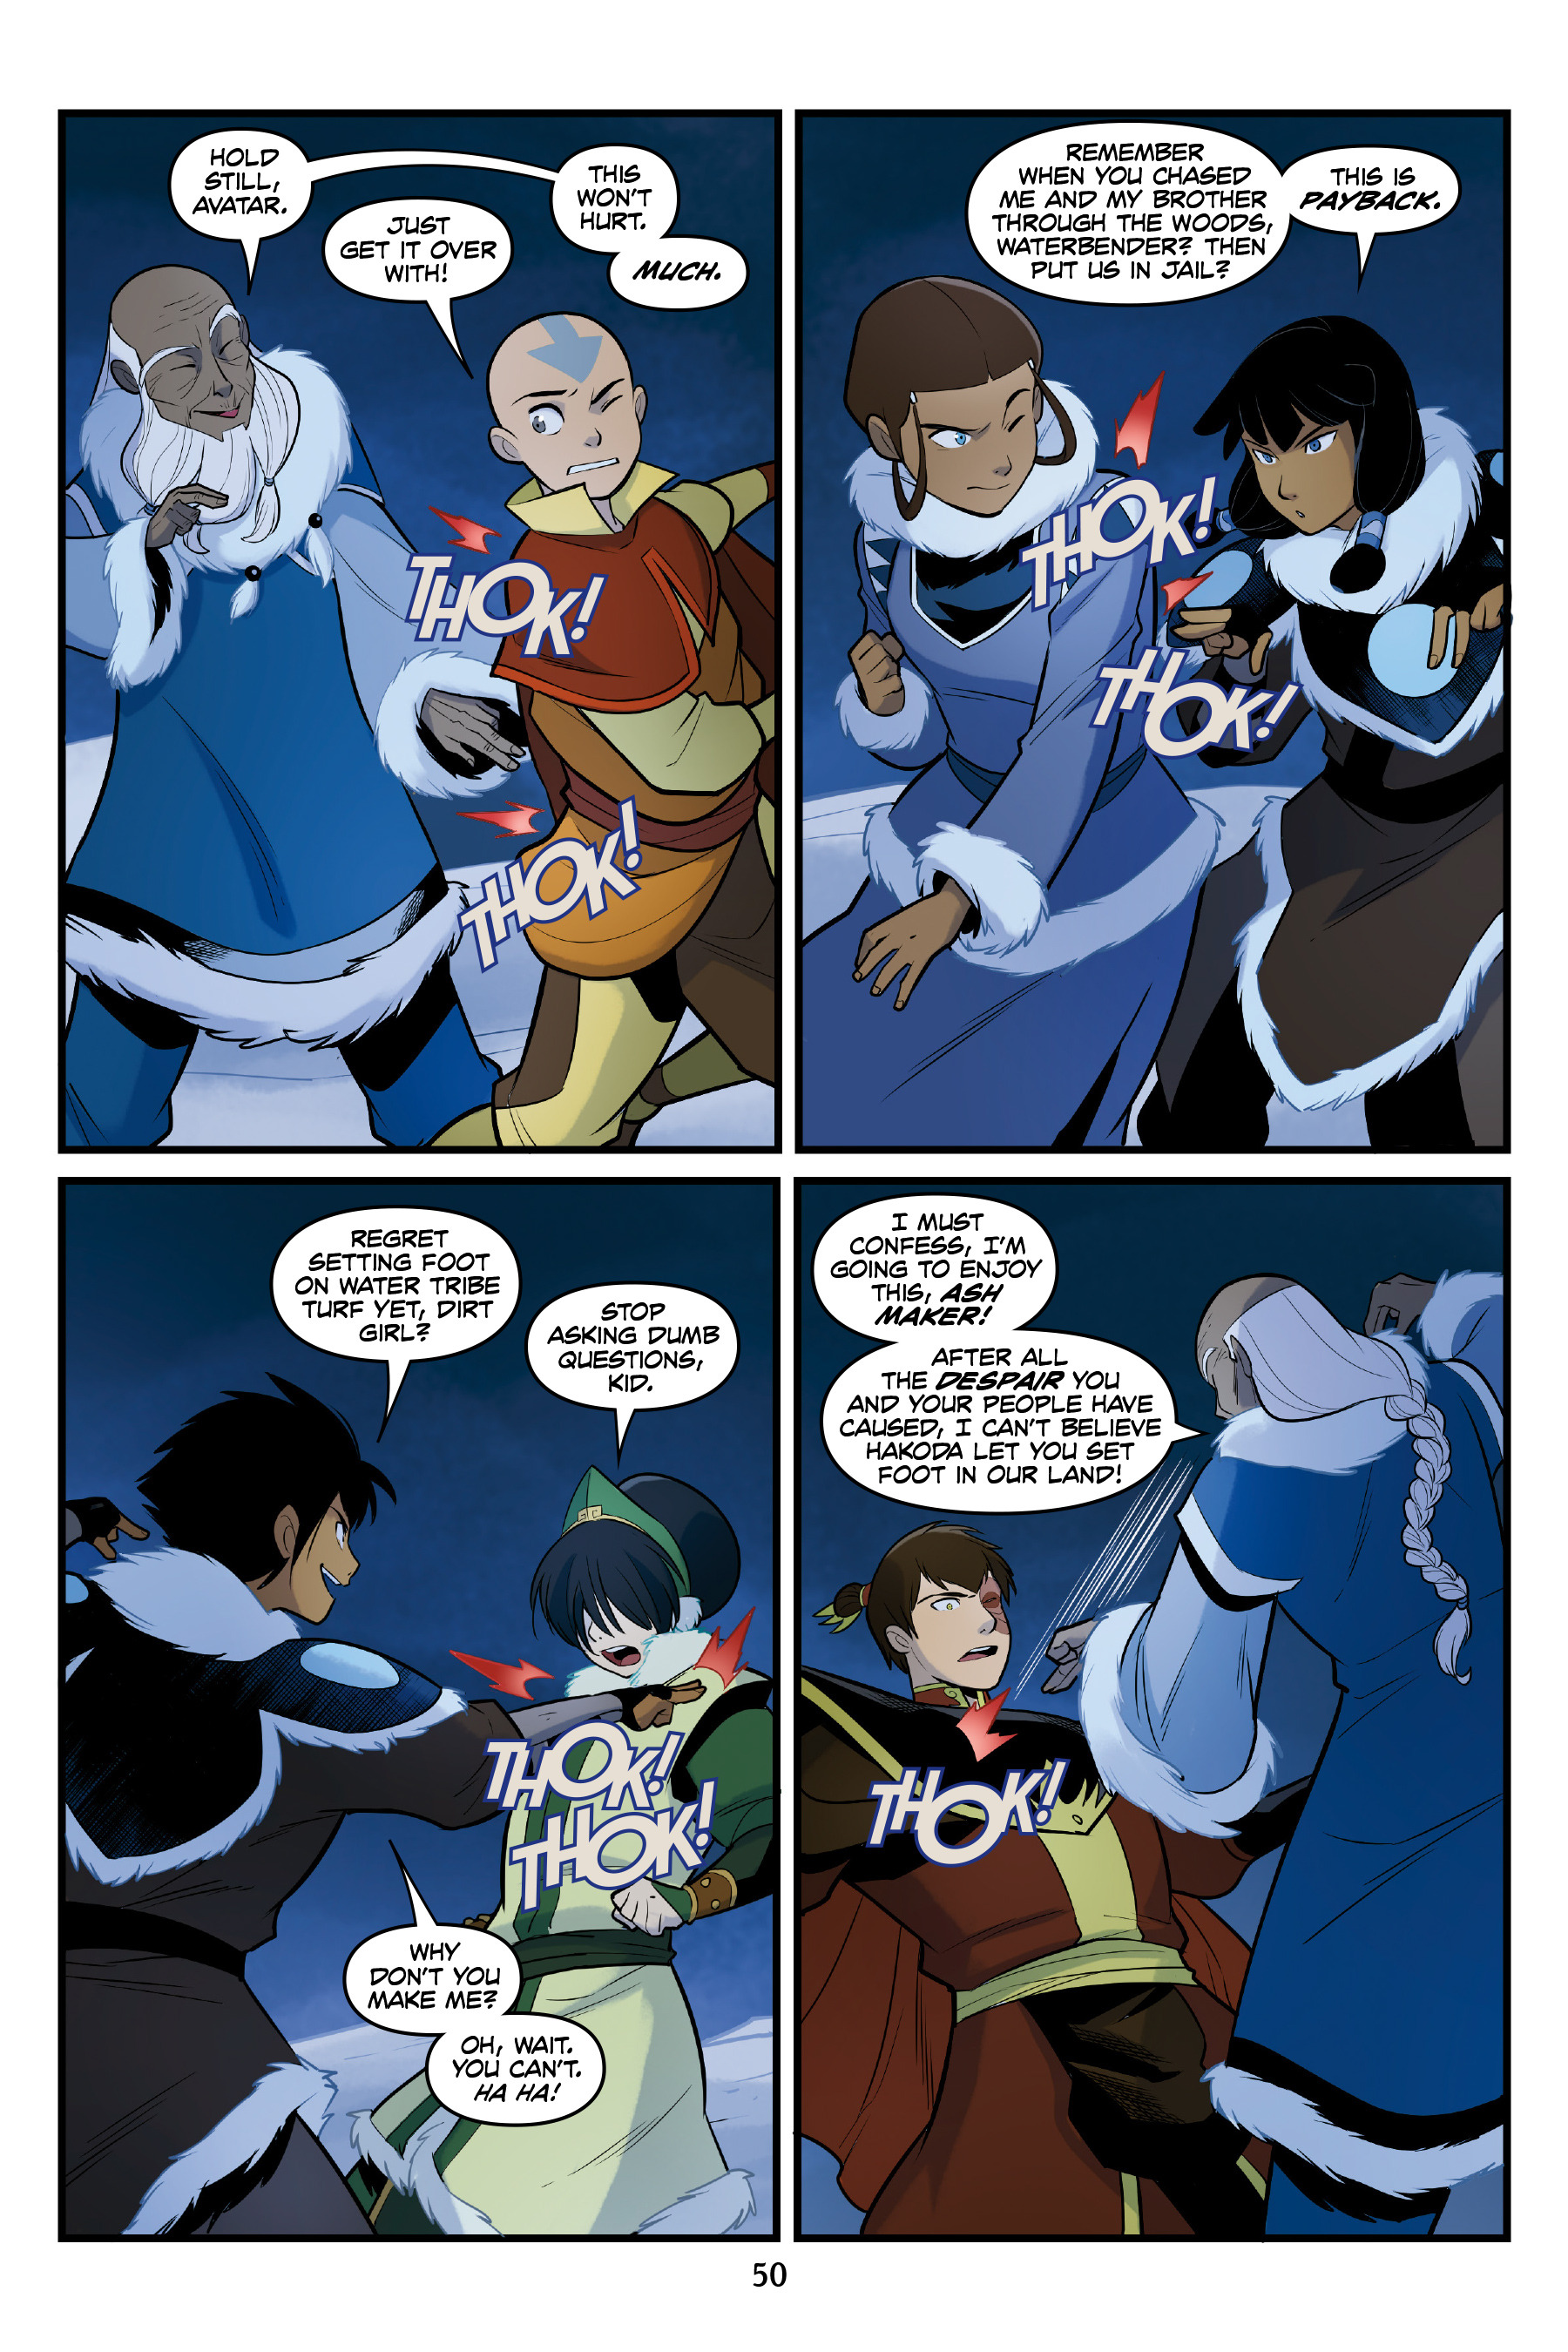 Read online Nickelodeon Avatar: The Last Airbender - North and South comic -  Issue #3 - 50